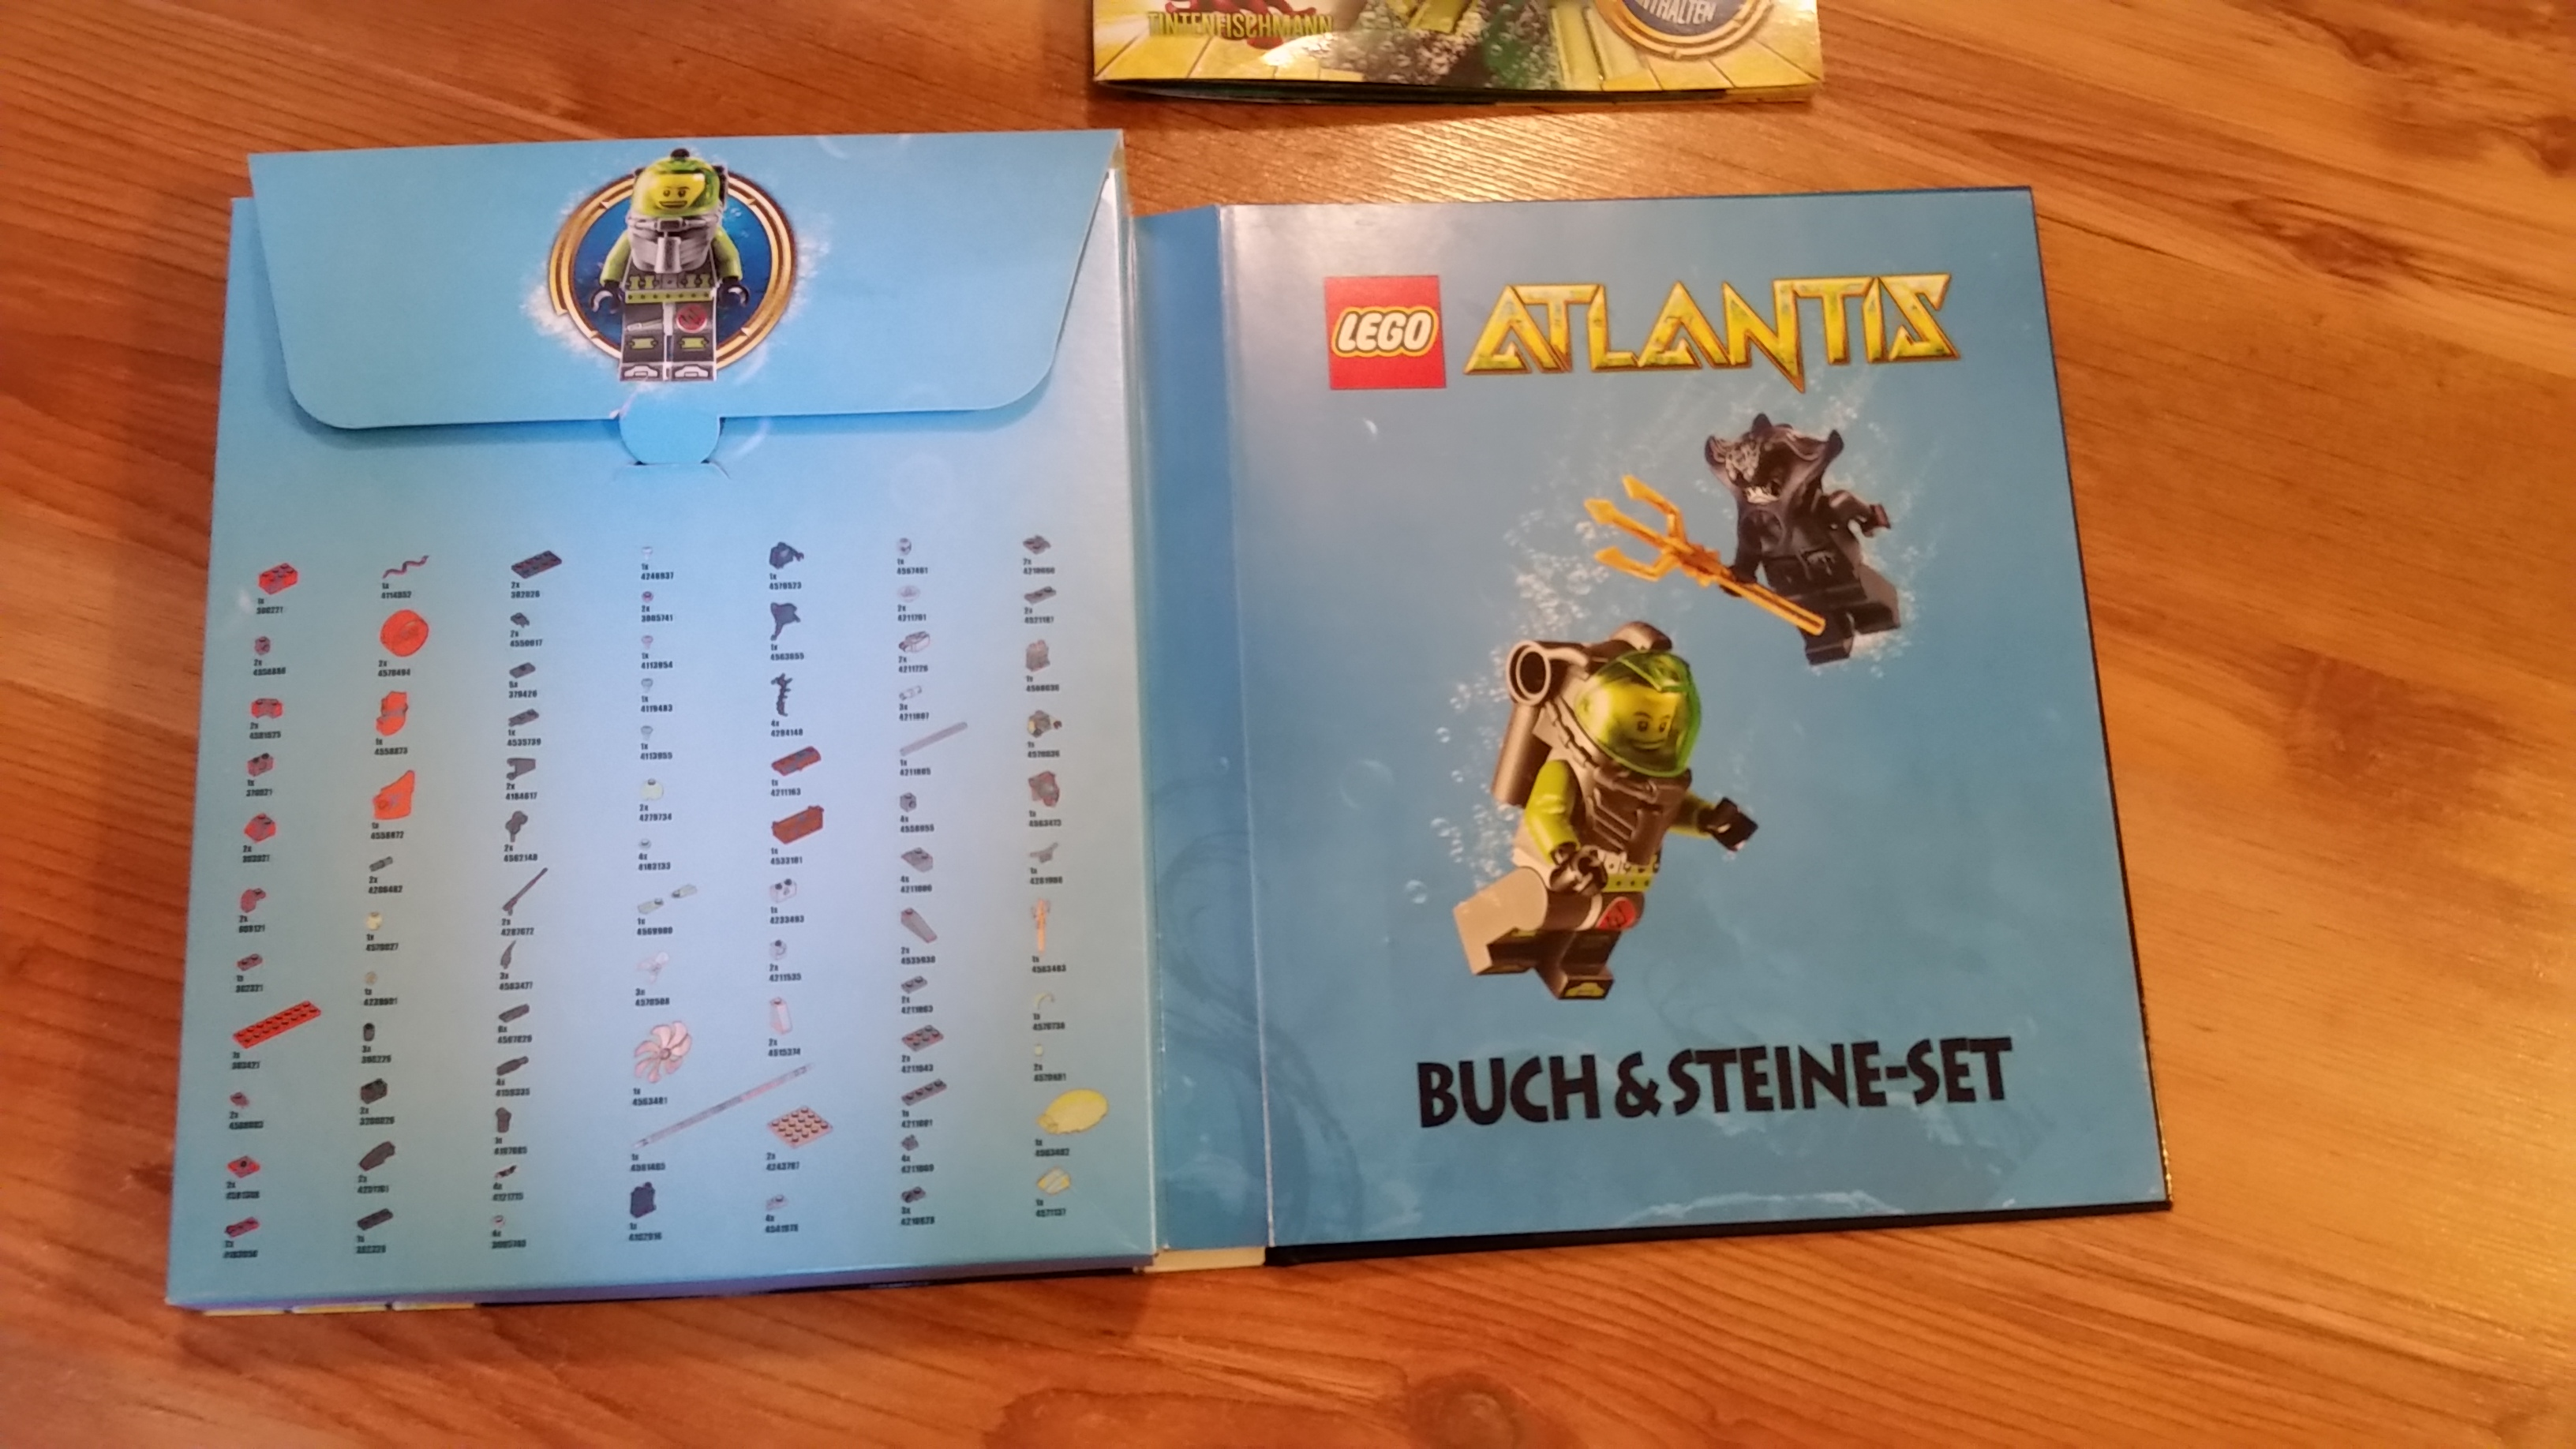 weihnachten riesige lego sammlung 8 kg viel atlantis technics racers city ebay. Black Bedroom Furniture Sets. Home Design Ideas